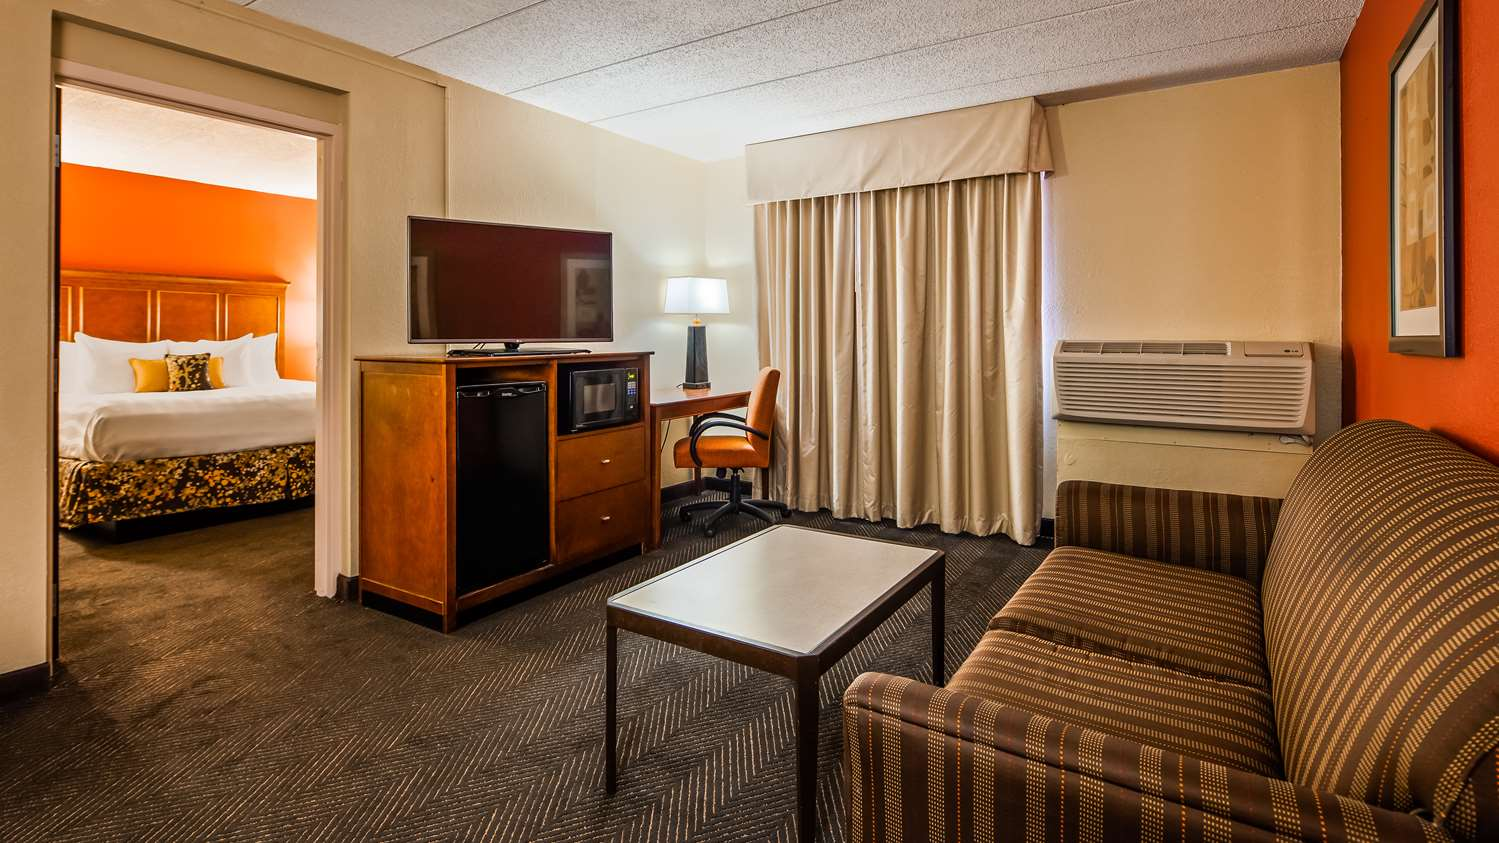 Room - Best Western Plus Hotel Shoreview